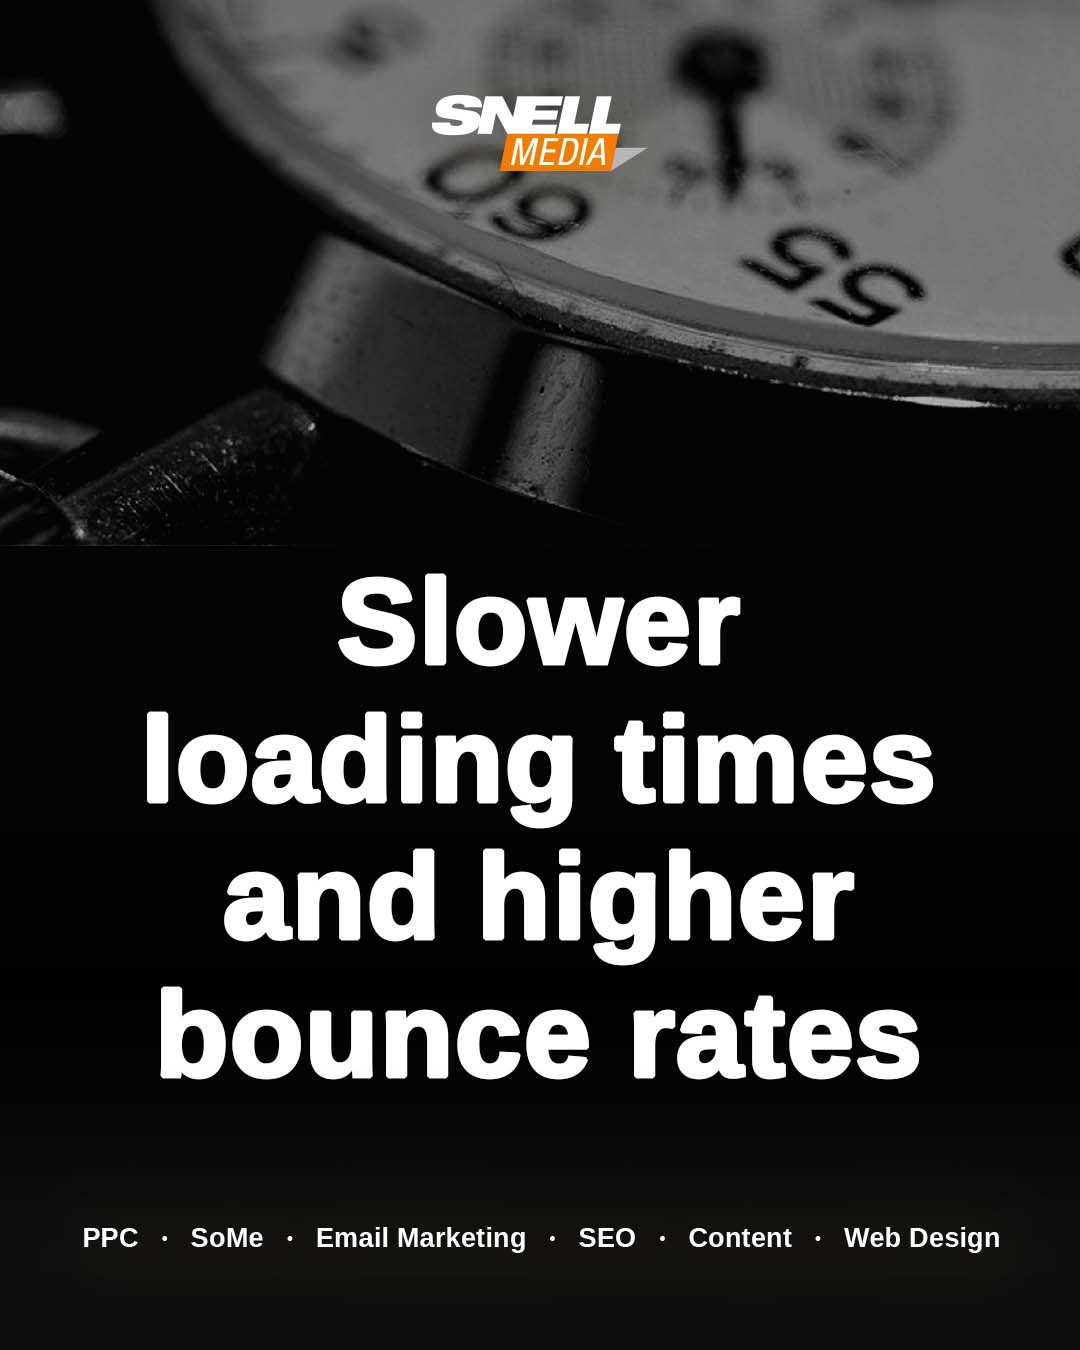 Slower Loading Times and Higher Bounce Rates